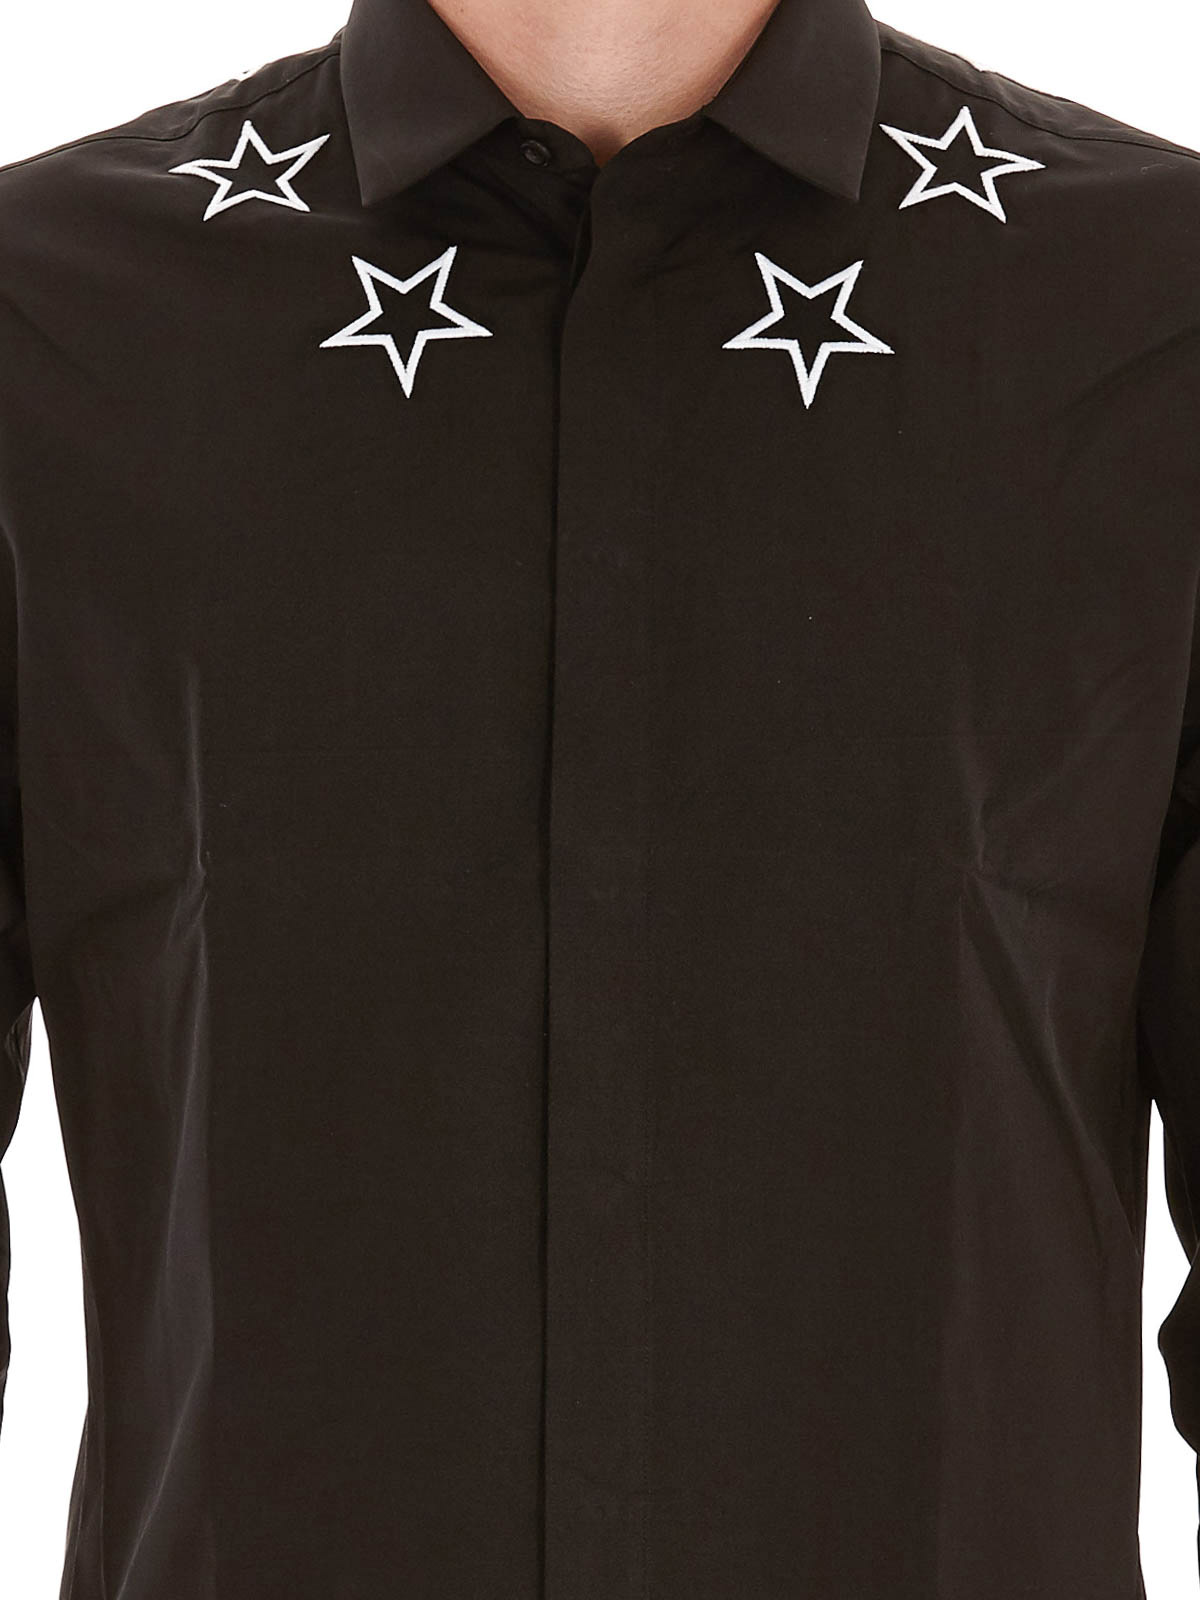 35393ca4464 Givenchy - Embroidered stars cotton shirt - shirts - 17S6068300001